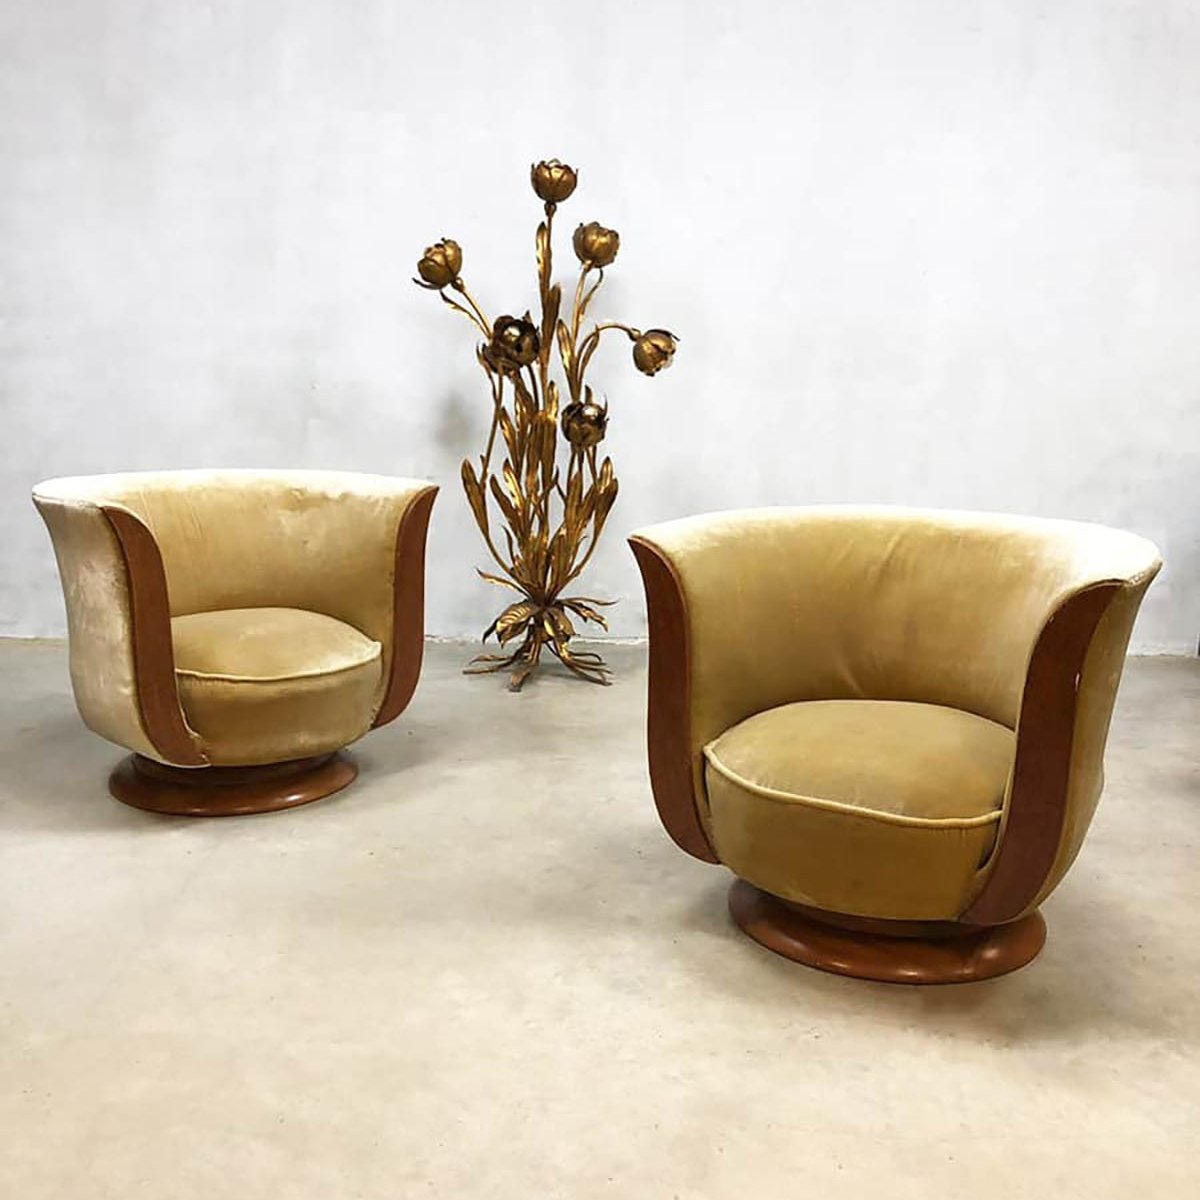 Set Of 2 Art Deco Tulip Lounge Chairs For Hotel Le Malandre